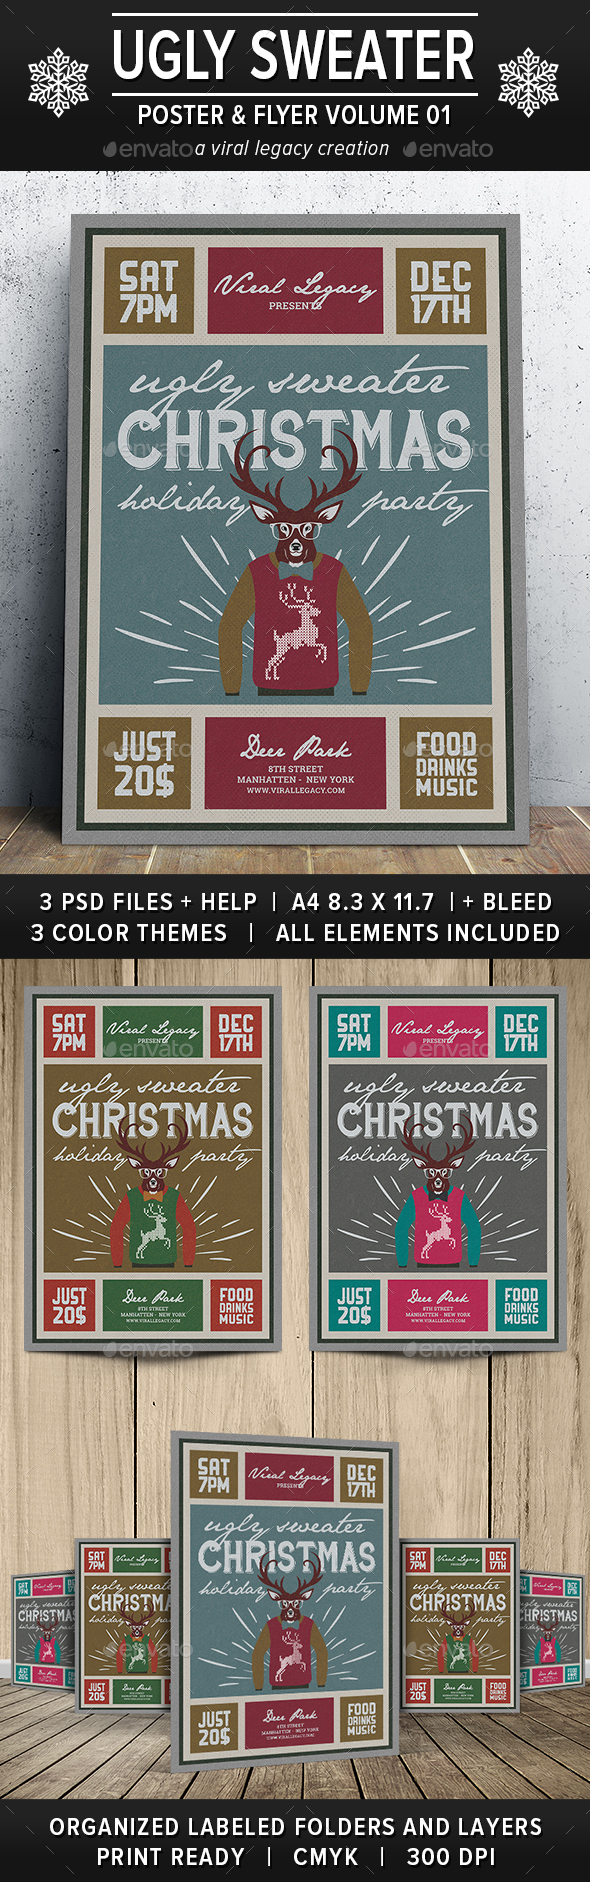 Ugly Sweater Poster / Flyer V01 - Flyers Print Templates